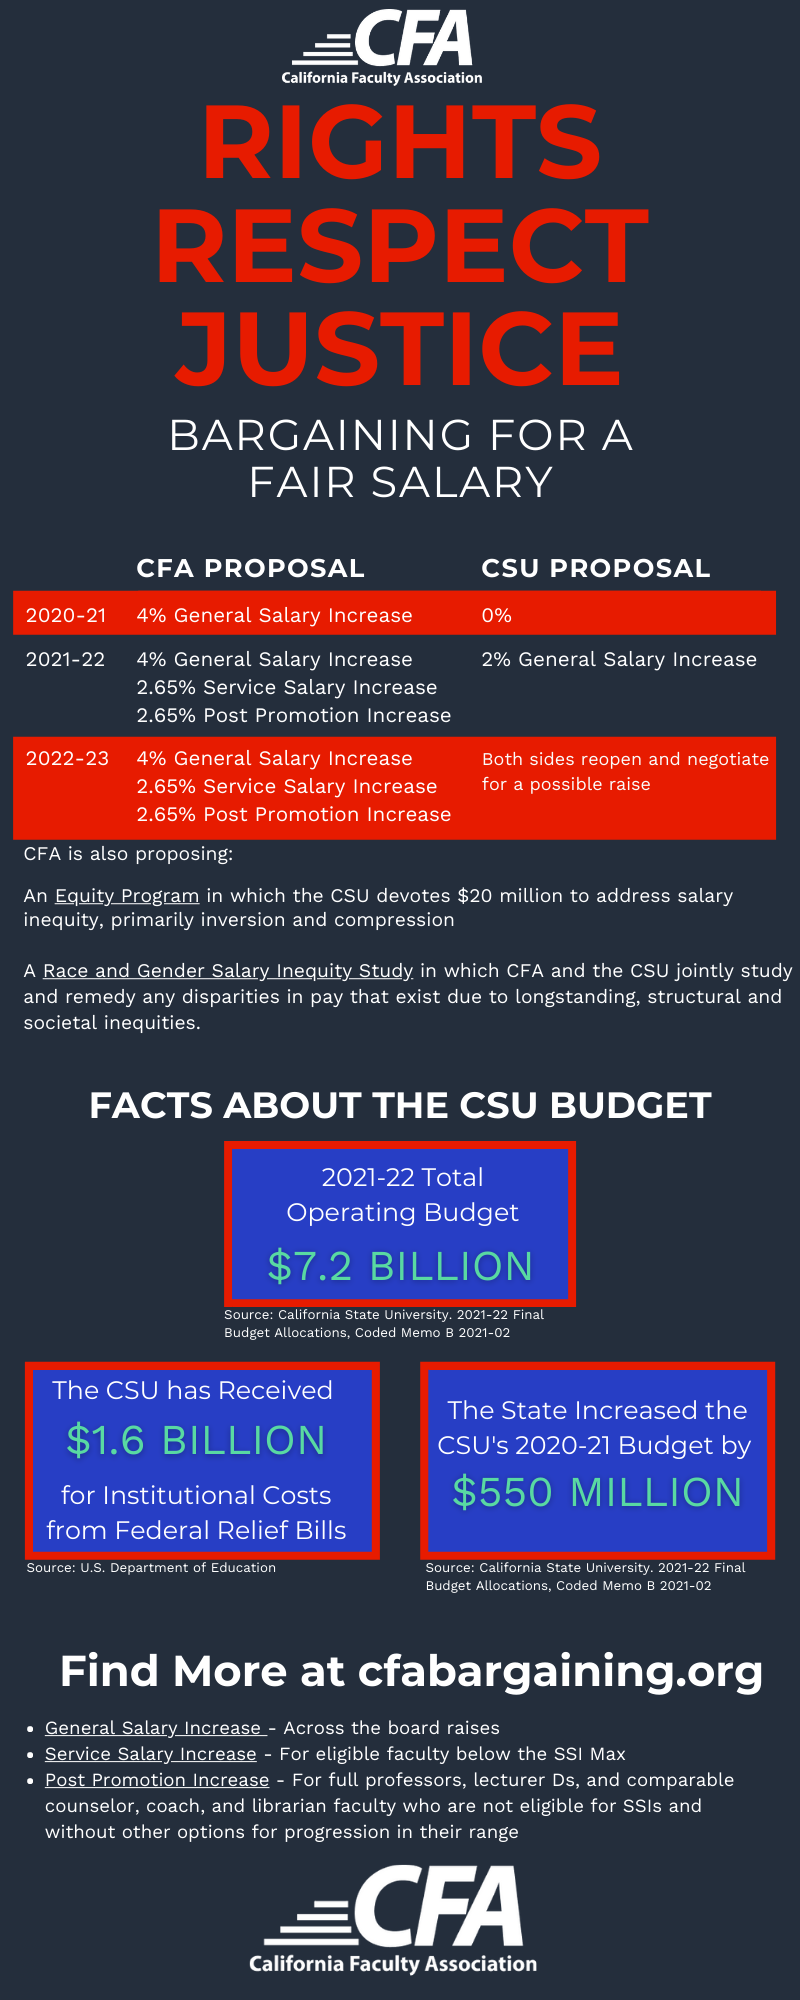 Infographic comparing the CFA and CSU bargaining proposals on salary.